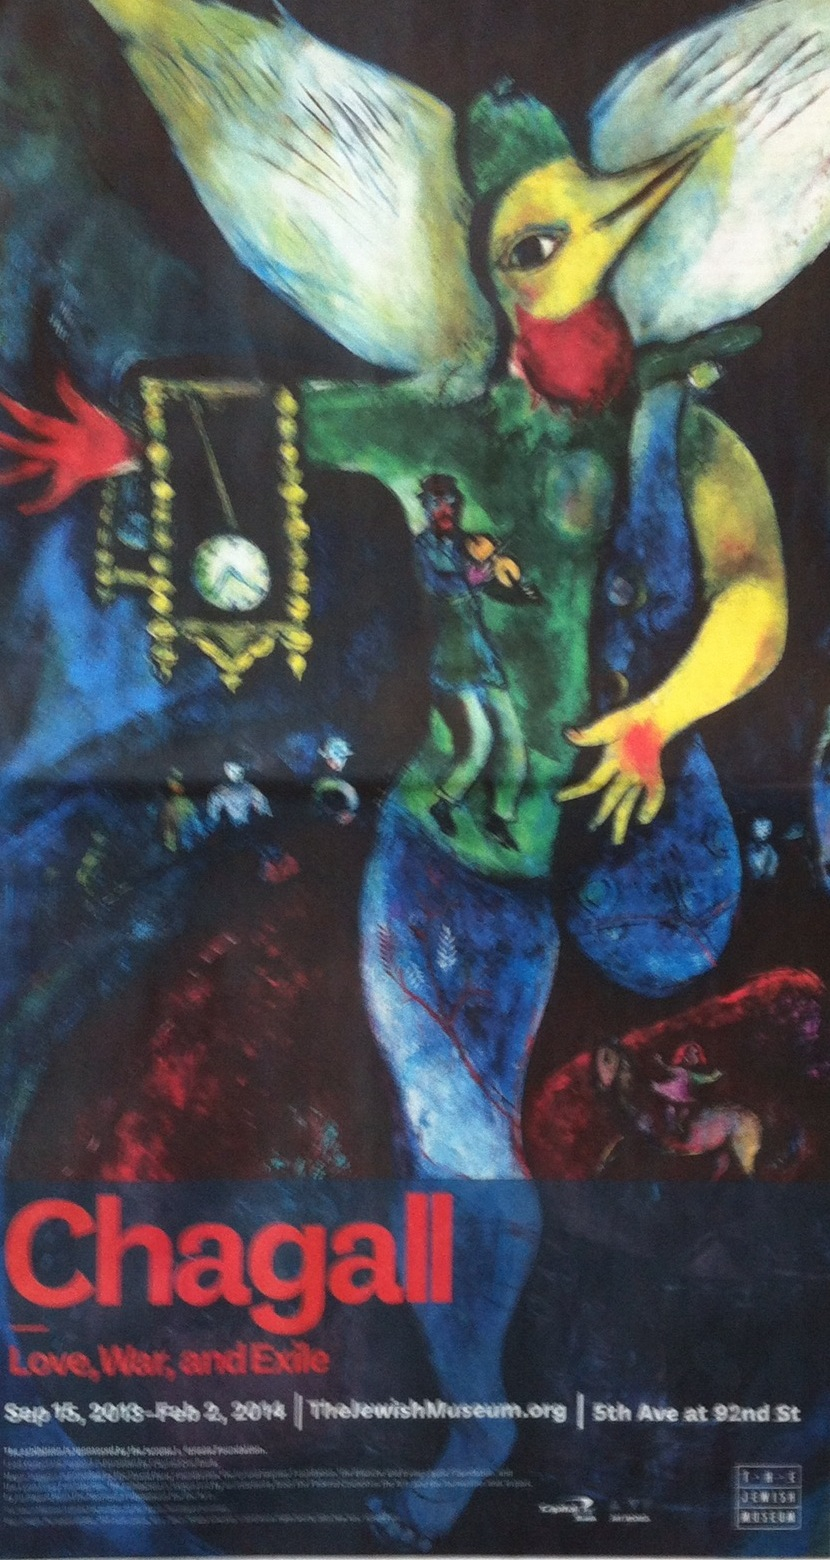 This is the image from the full page ad for the Chagall exhibition at the Jewish Museum. With a bit of flattening this would make a great poster, the colours were as rich as those of his artwork.